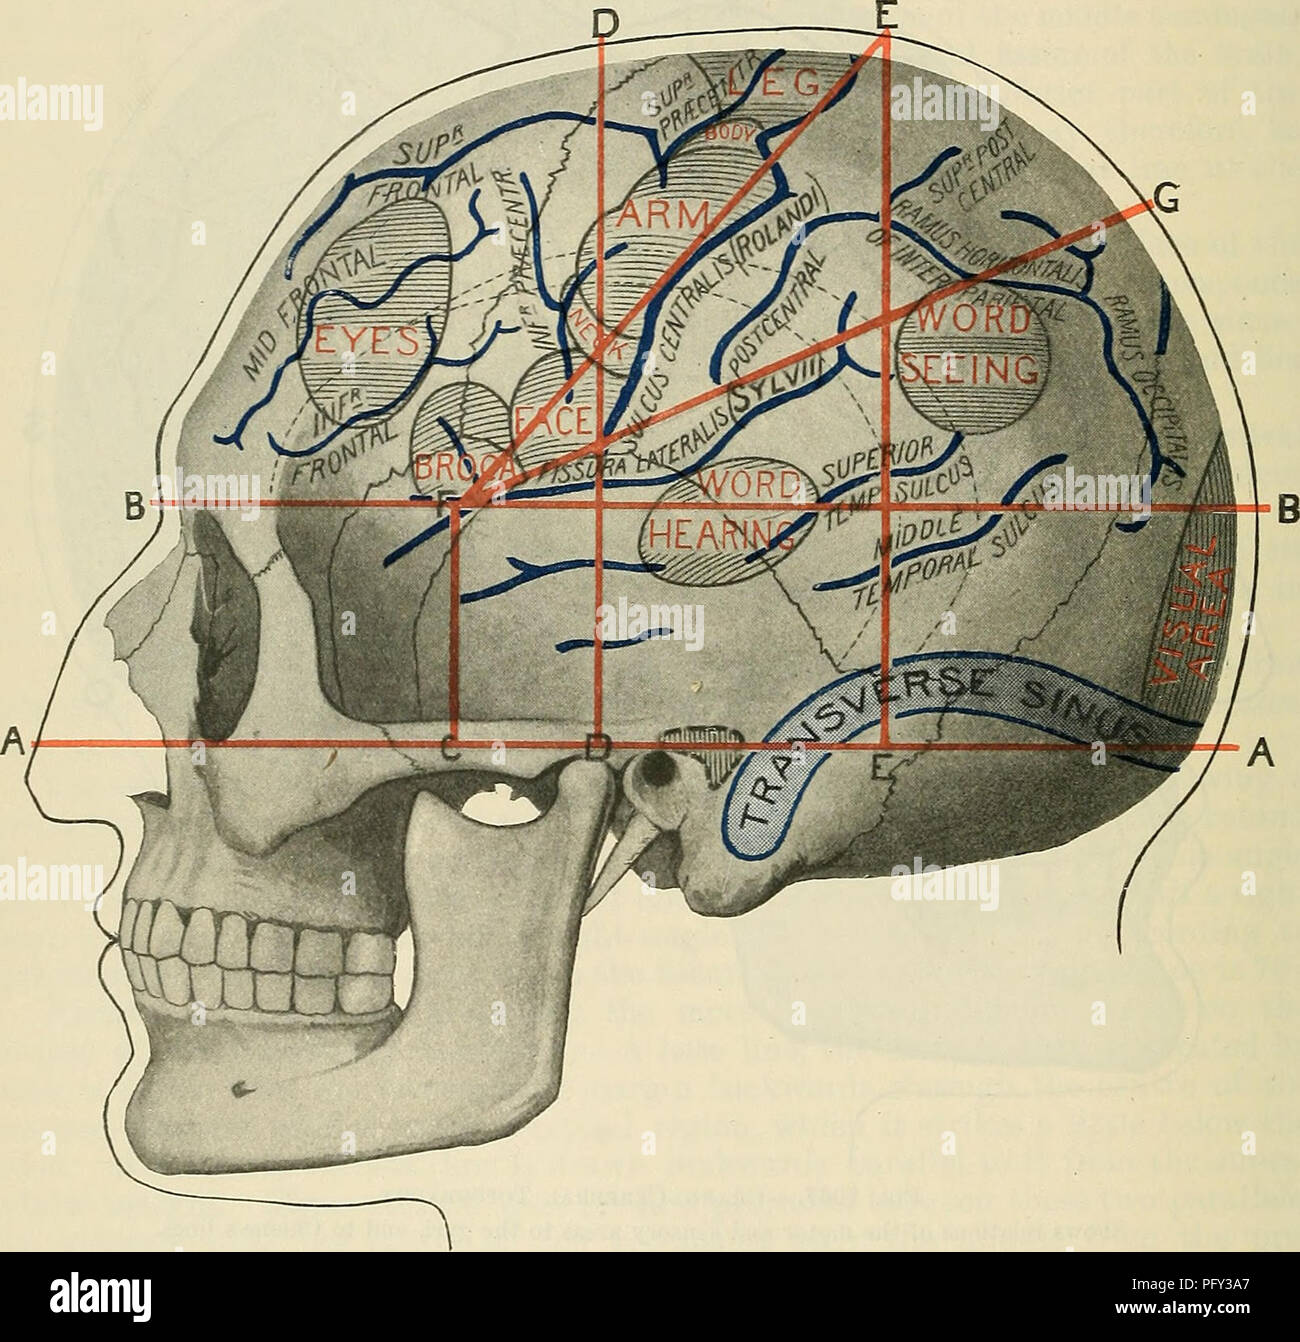 Cunninghams Text Book Of Anatomy Anatomy 1362 Sueface And